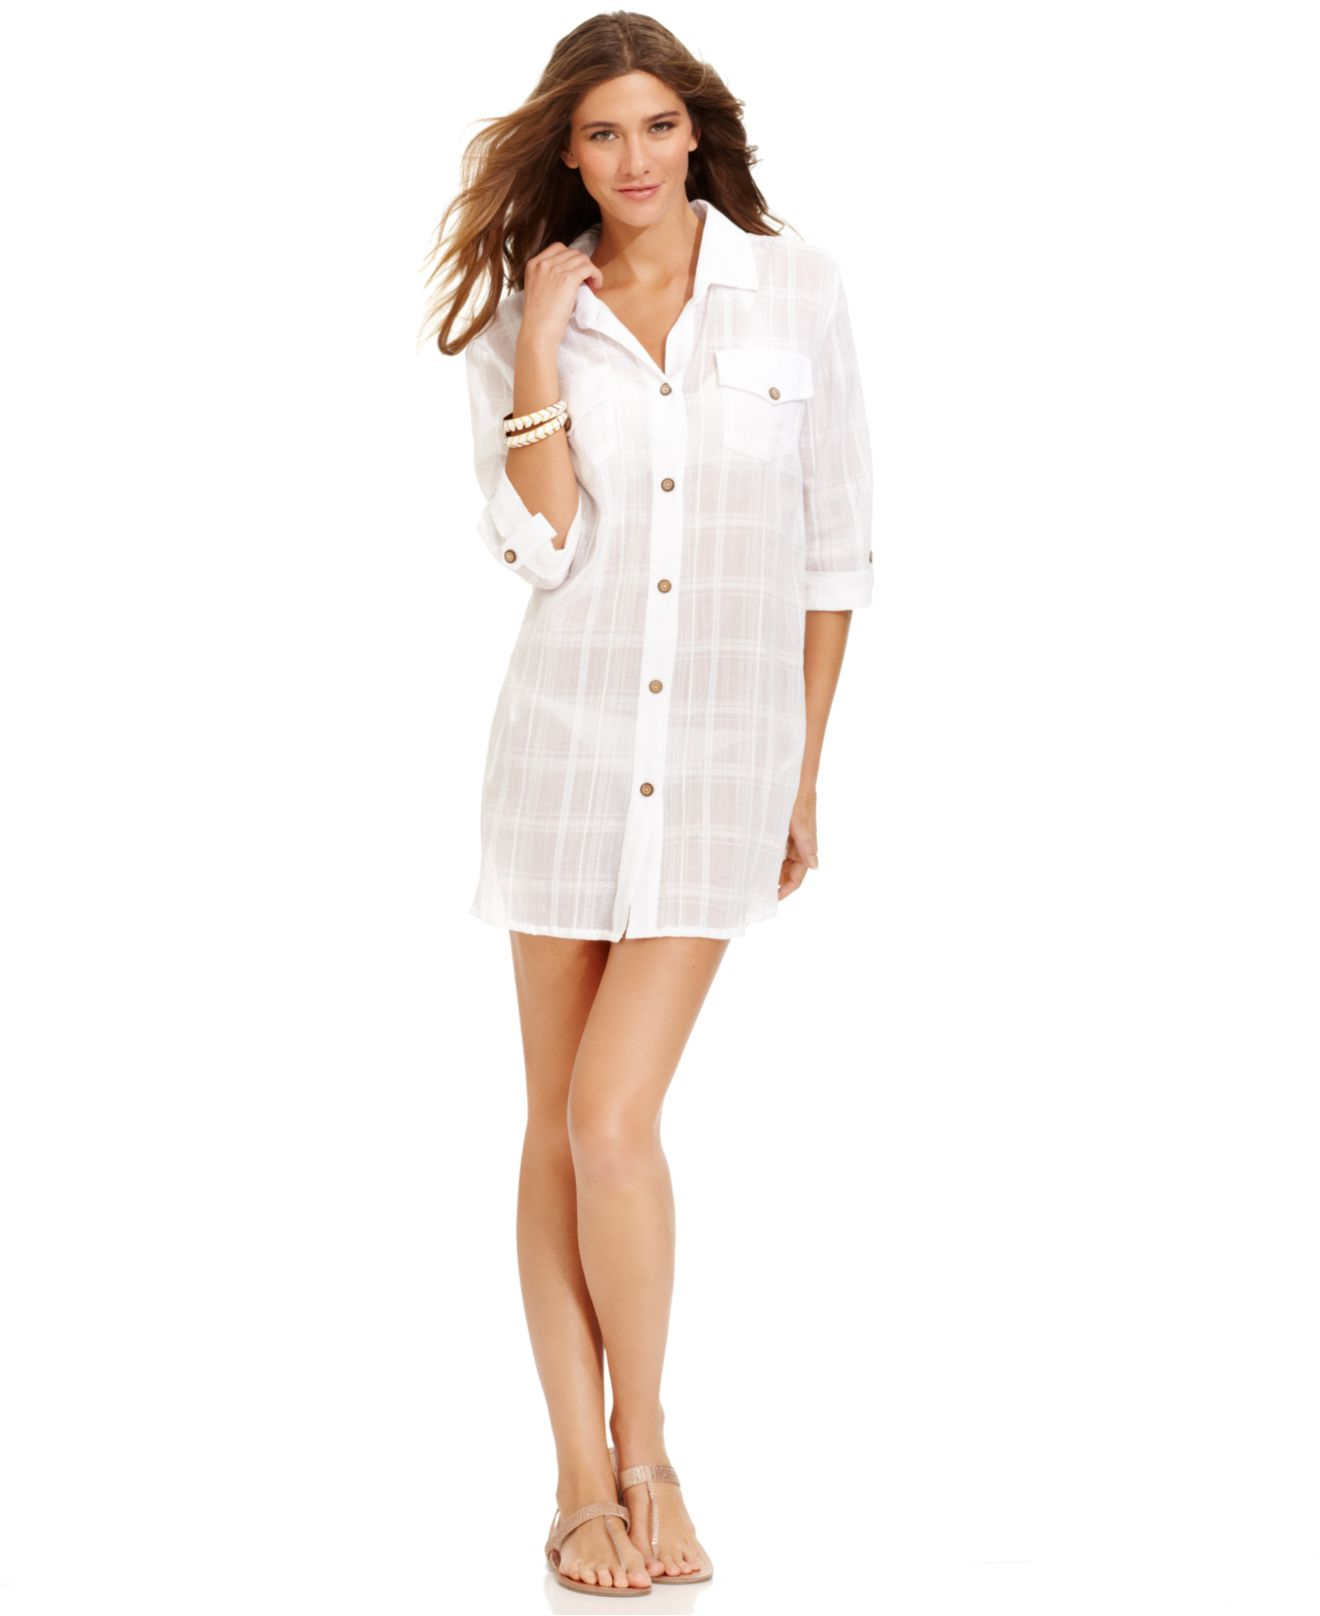 db15a547285 Dotti Buttonfront Shirtdress Coverup in White - Lyst